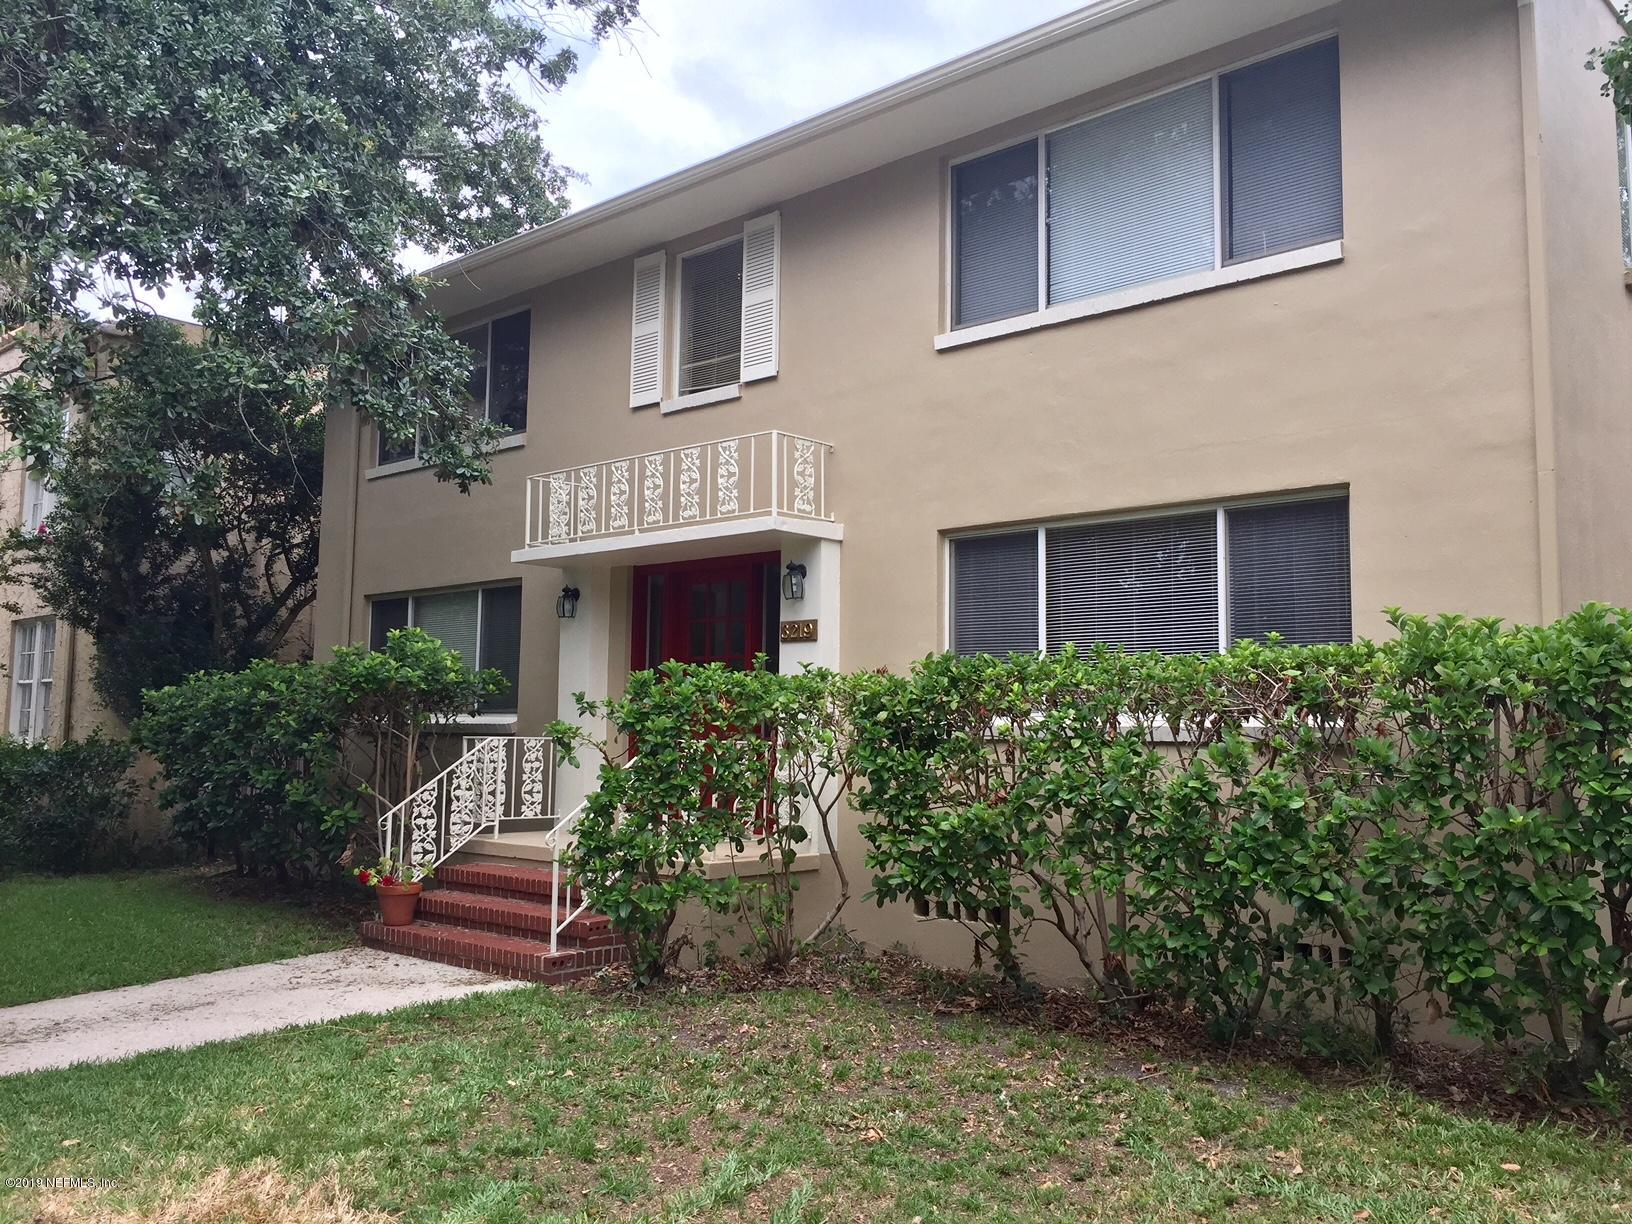 3219 OAK, JACKSONVILLE, FLORIDA 32205, 8 Bedrooms Bedrooms, ,4 BathroomsBathrooms,Multi family,For sale,OAK,999684